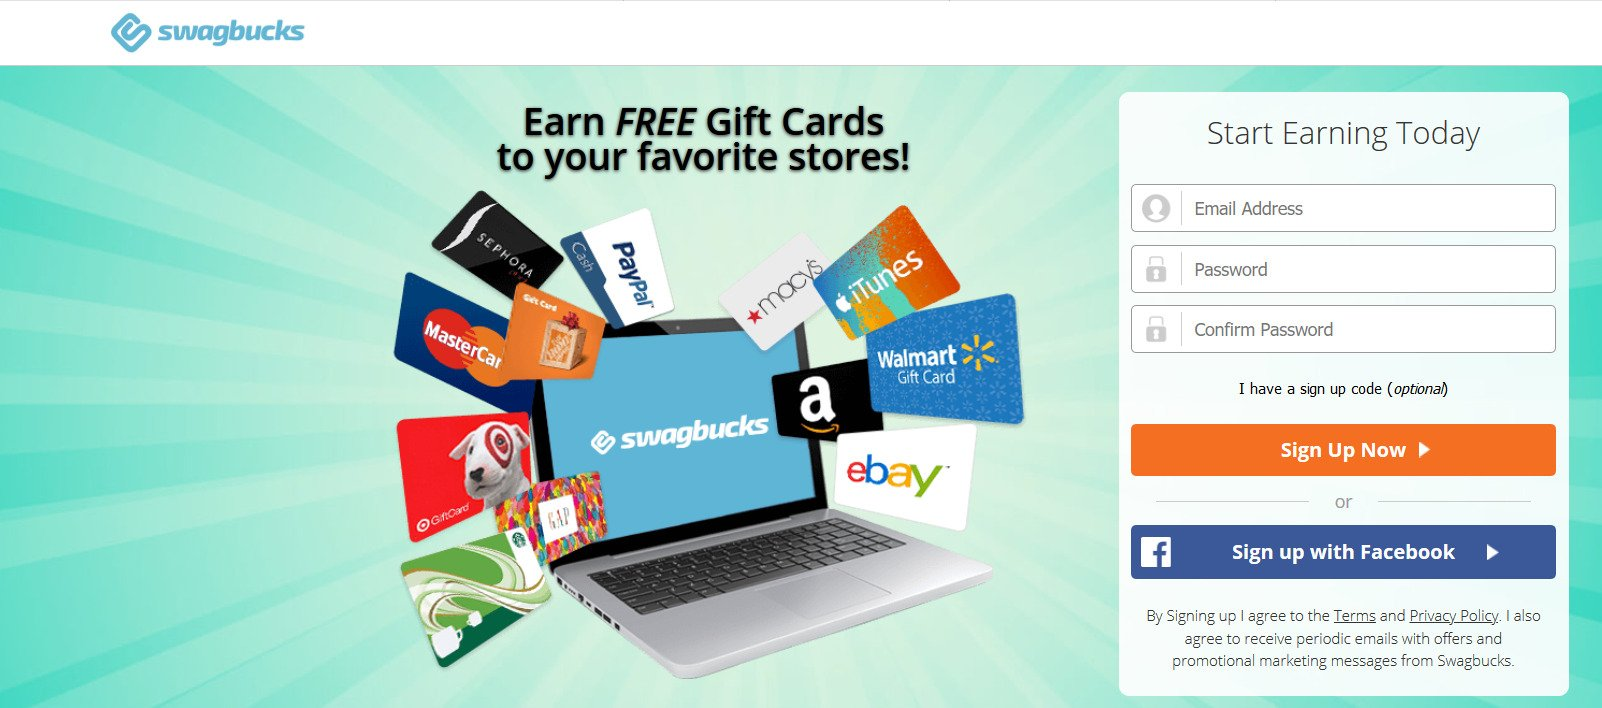 swagbucks review - earn free gift cards to your favorite stores!